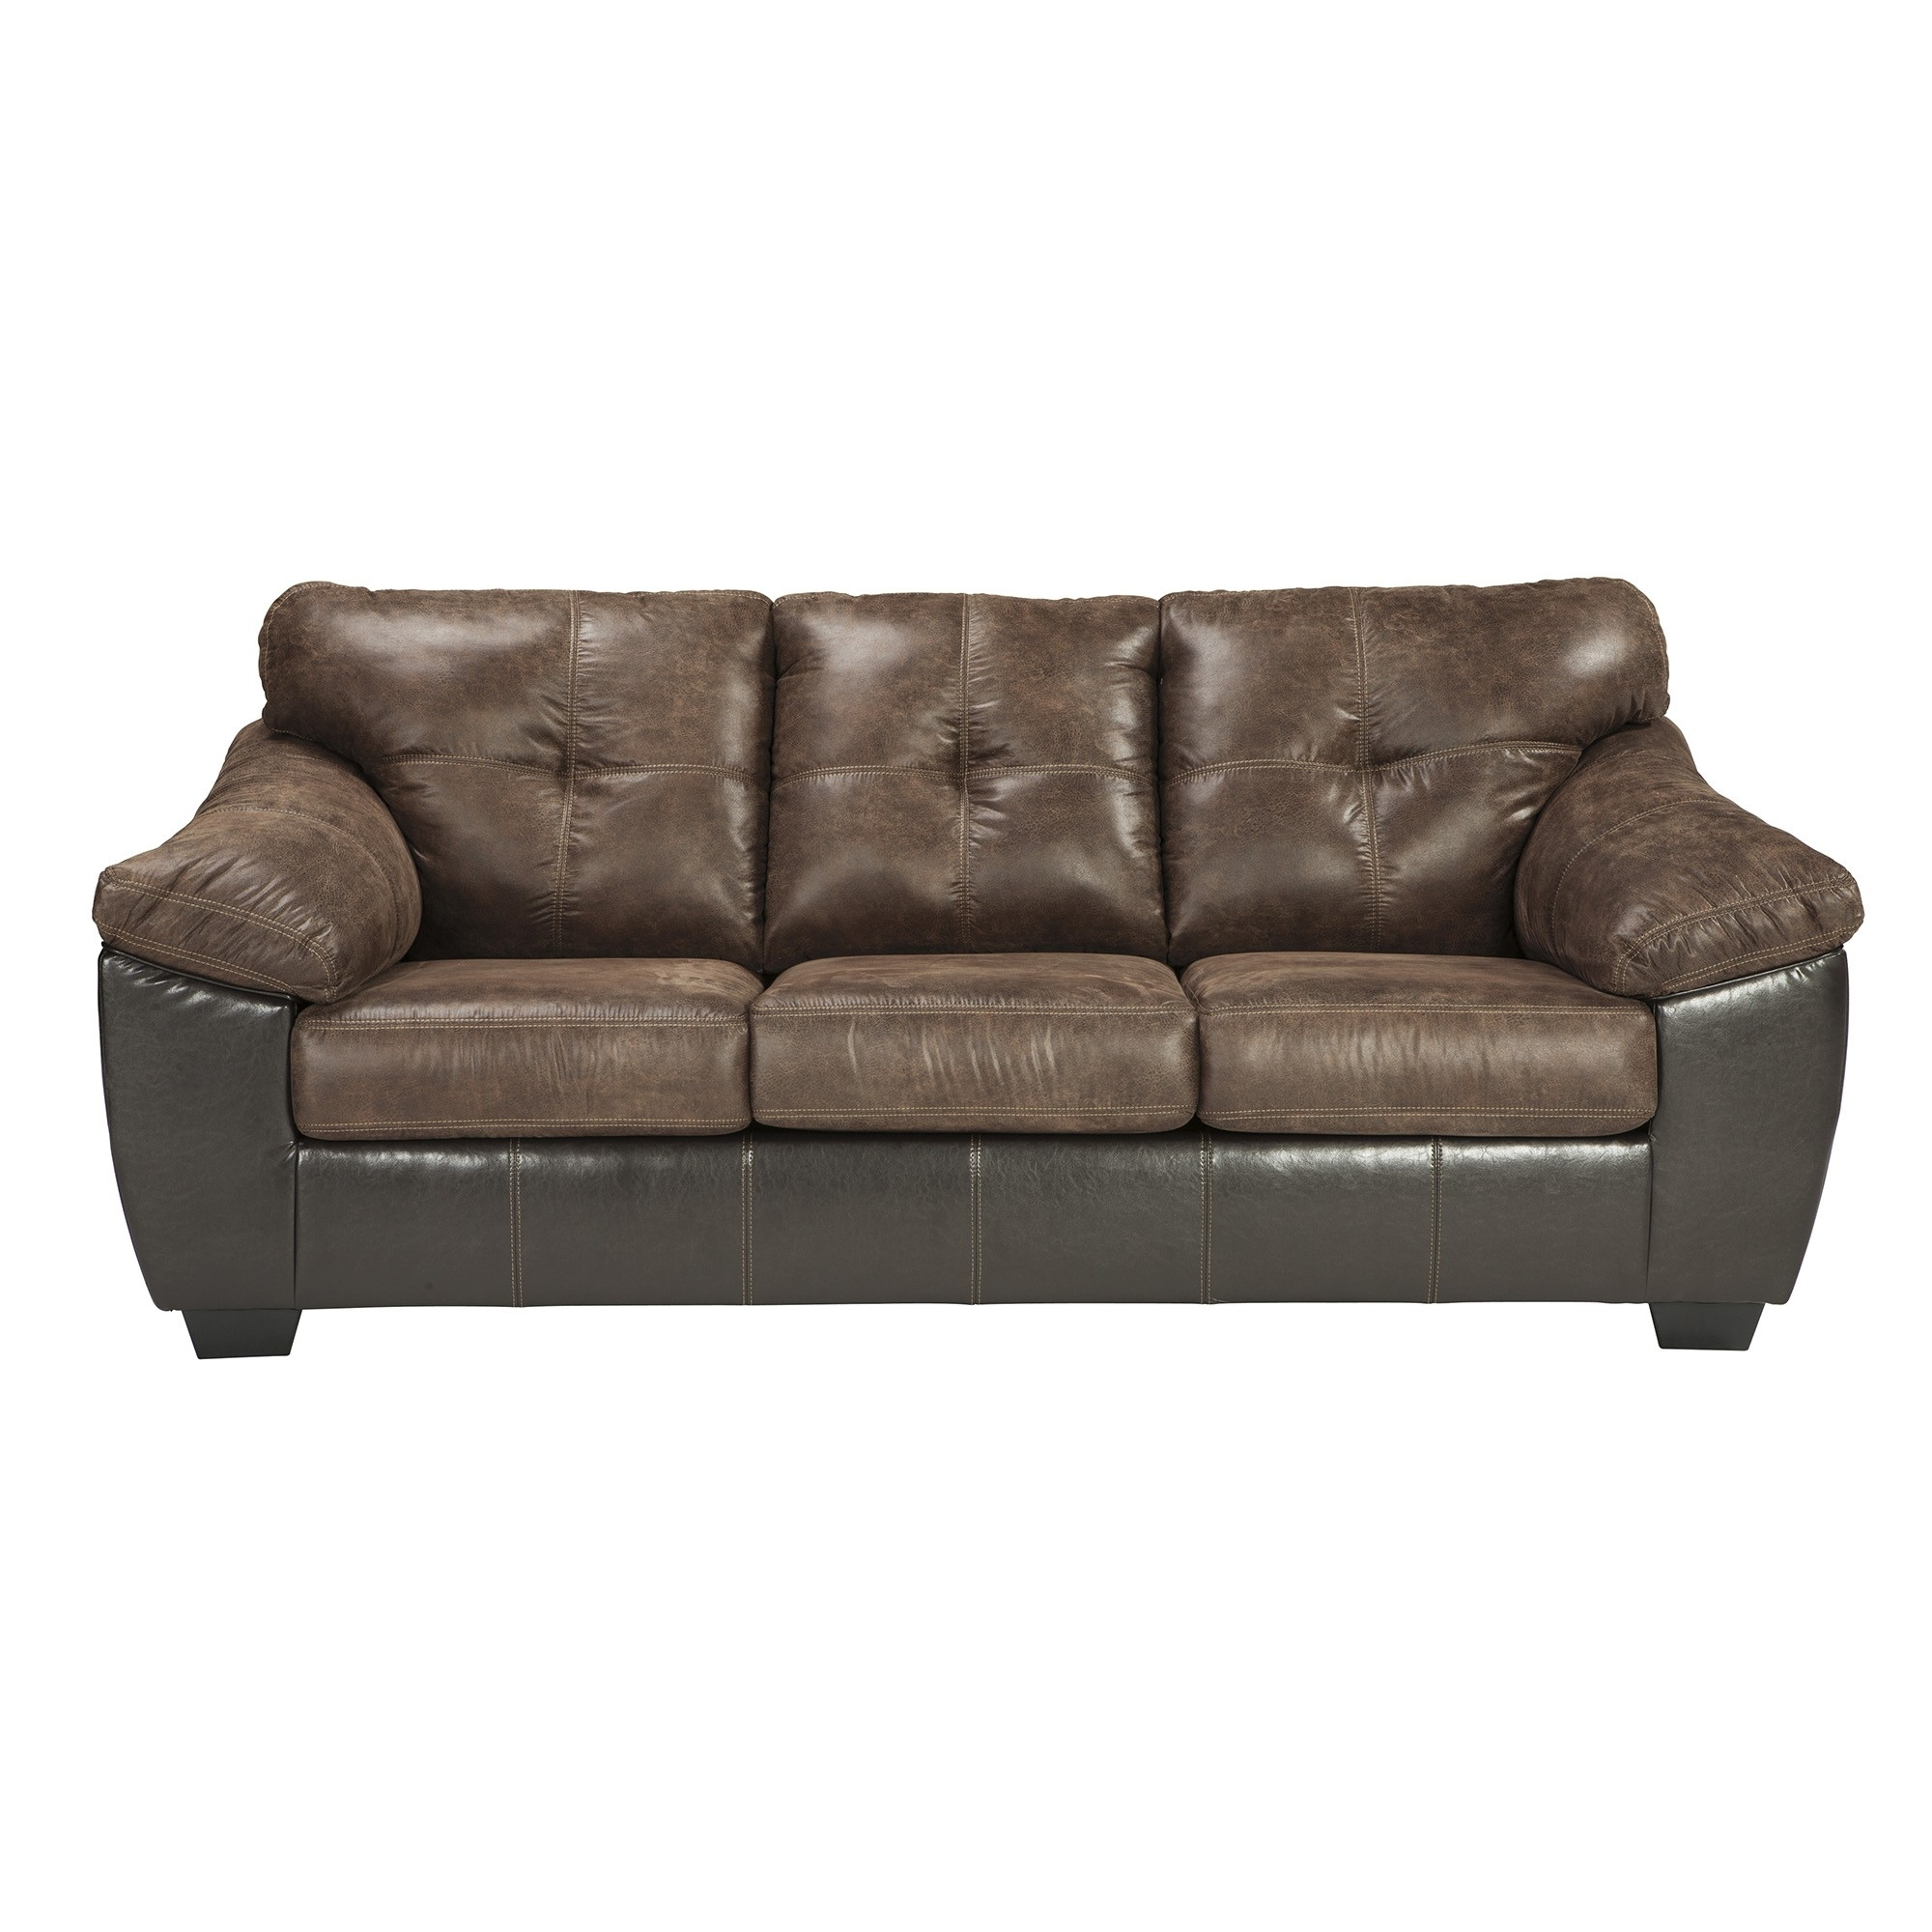 Welcome To Tepperman's Since 1925 | Tepperman's With Teppermans Sectional Sofas (View 4 of 10)